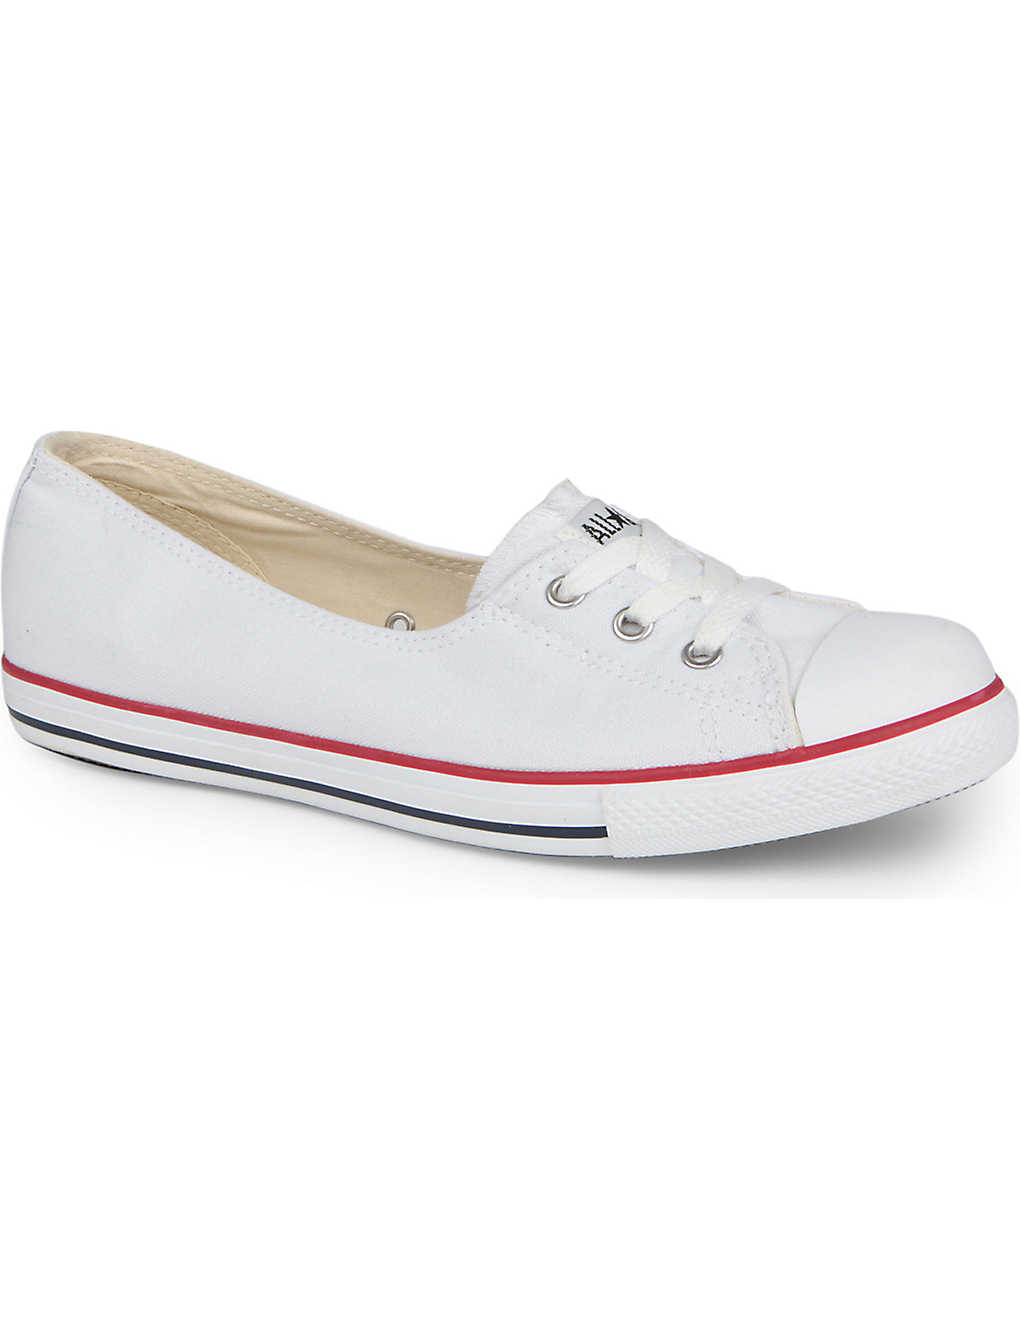 133e77d15b0f CONVERSE - Dance lace low-top trainers